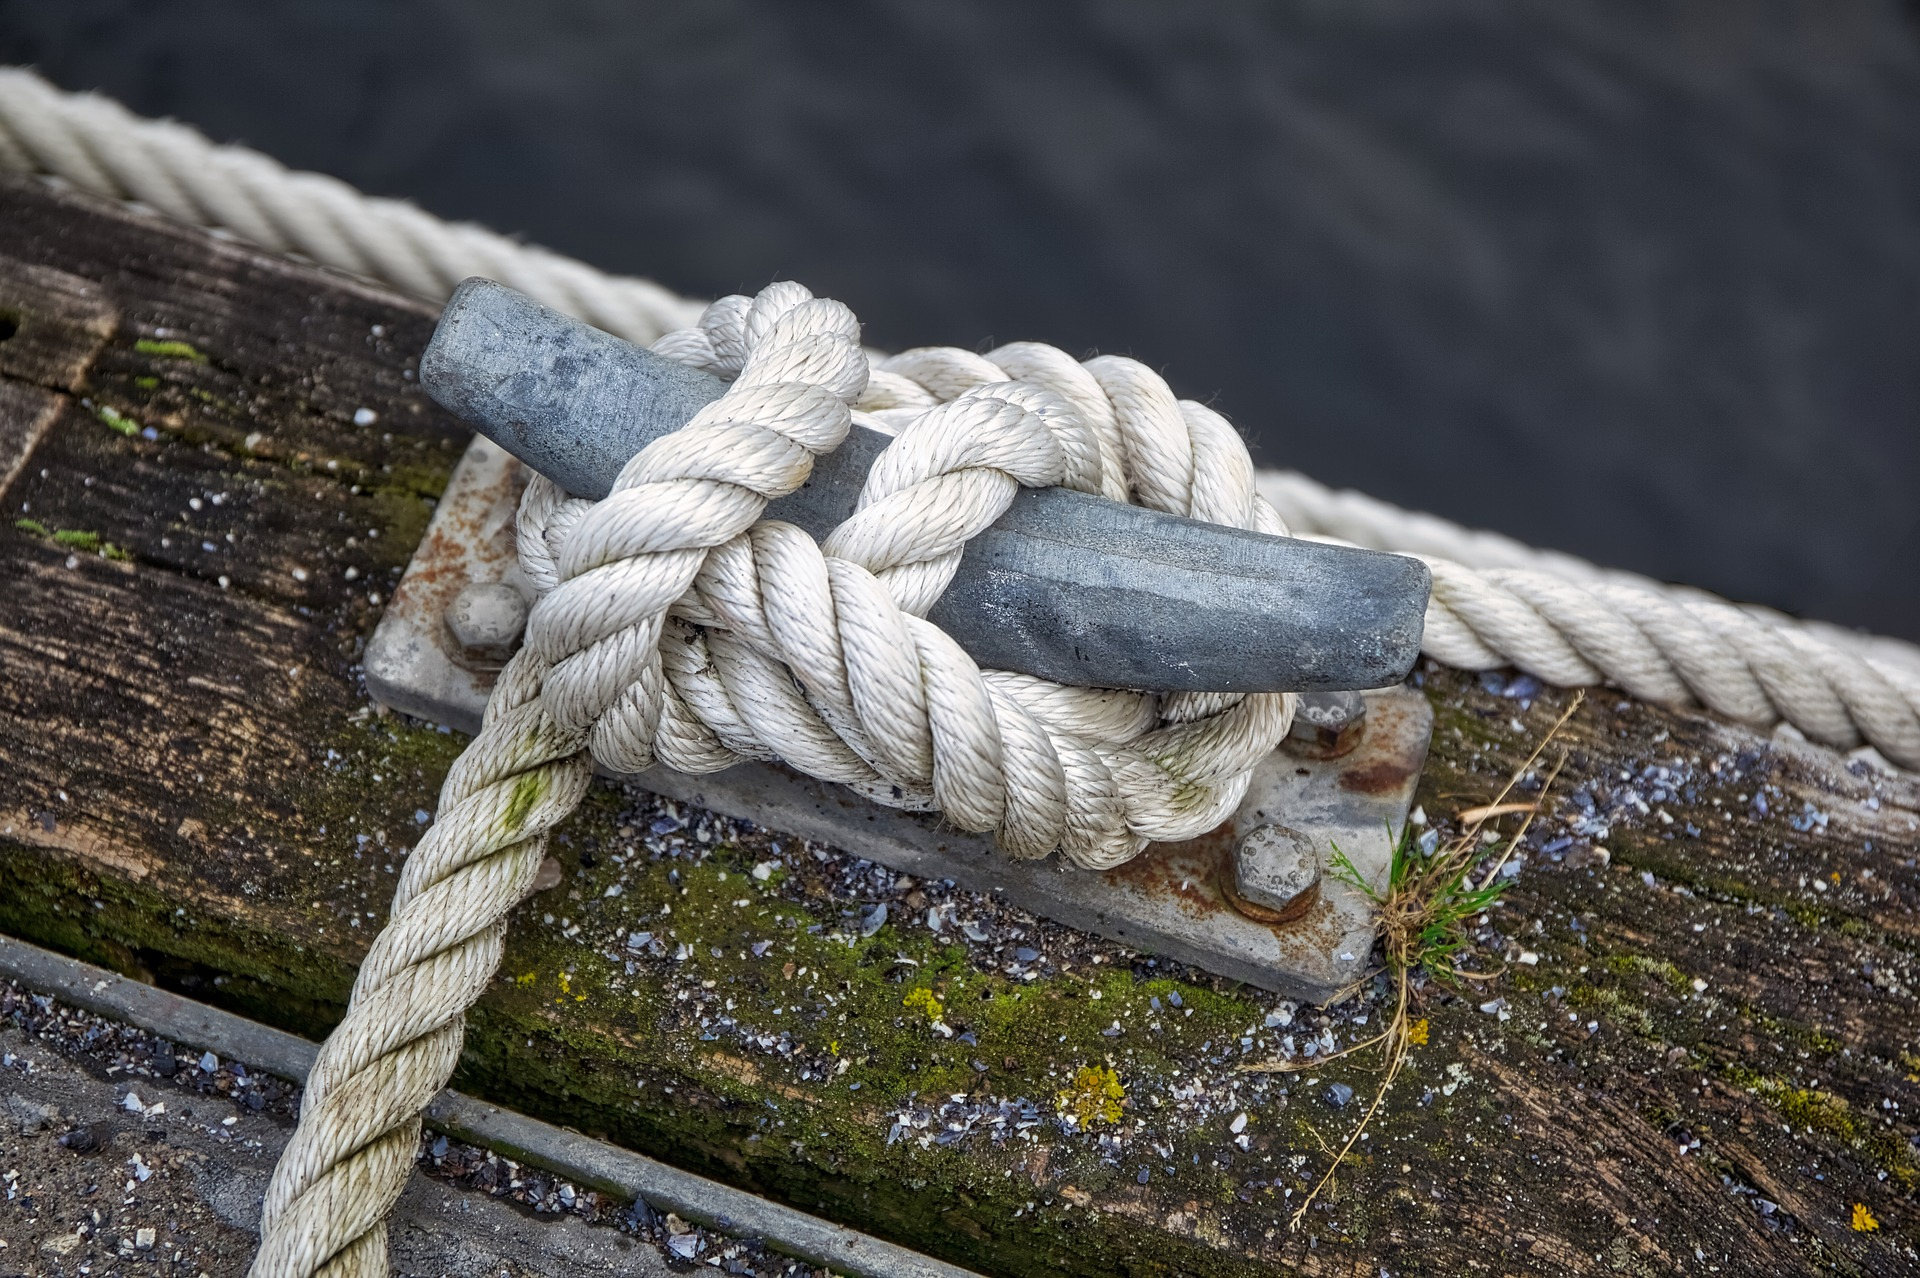 A knot used on a ship dock.